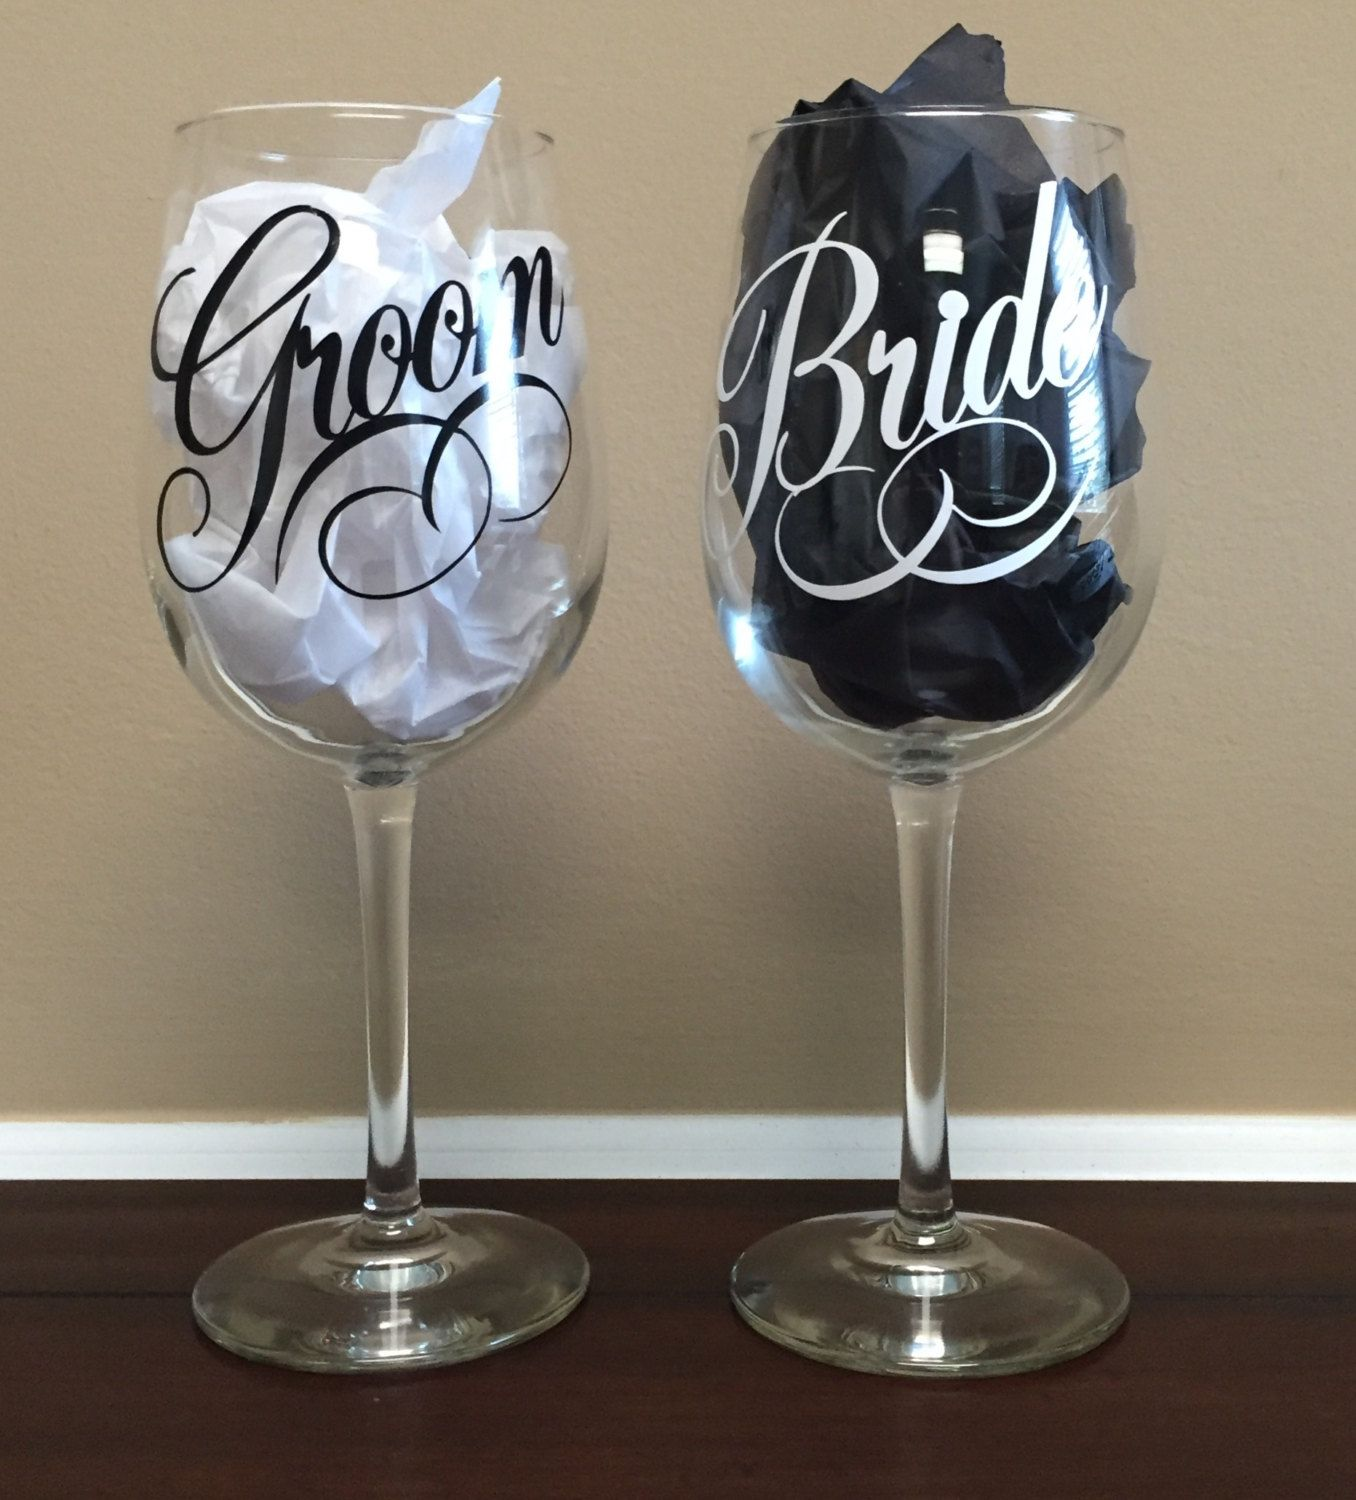 Diy Wedding Champagne Glasses Ideas Personalized Bride And Groom Wine Glasses By 5throwsouth